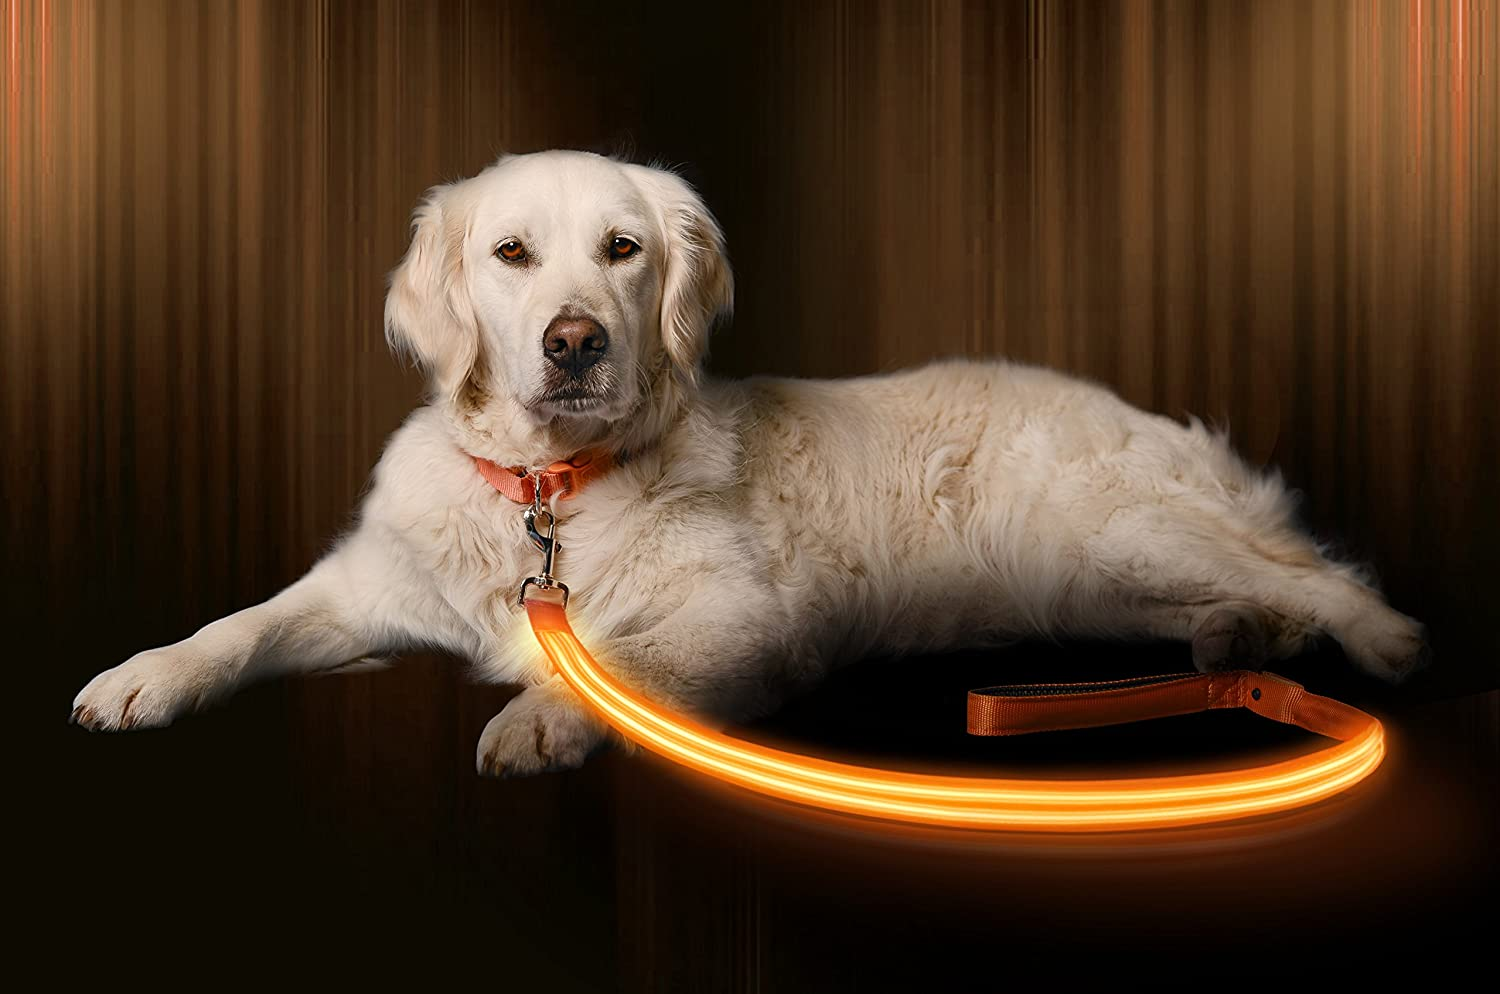 Illuminating Leash